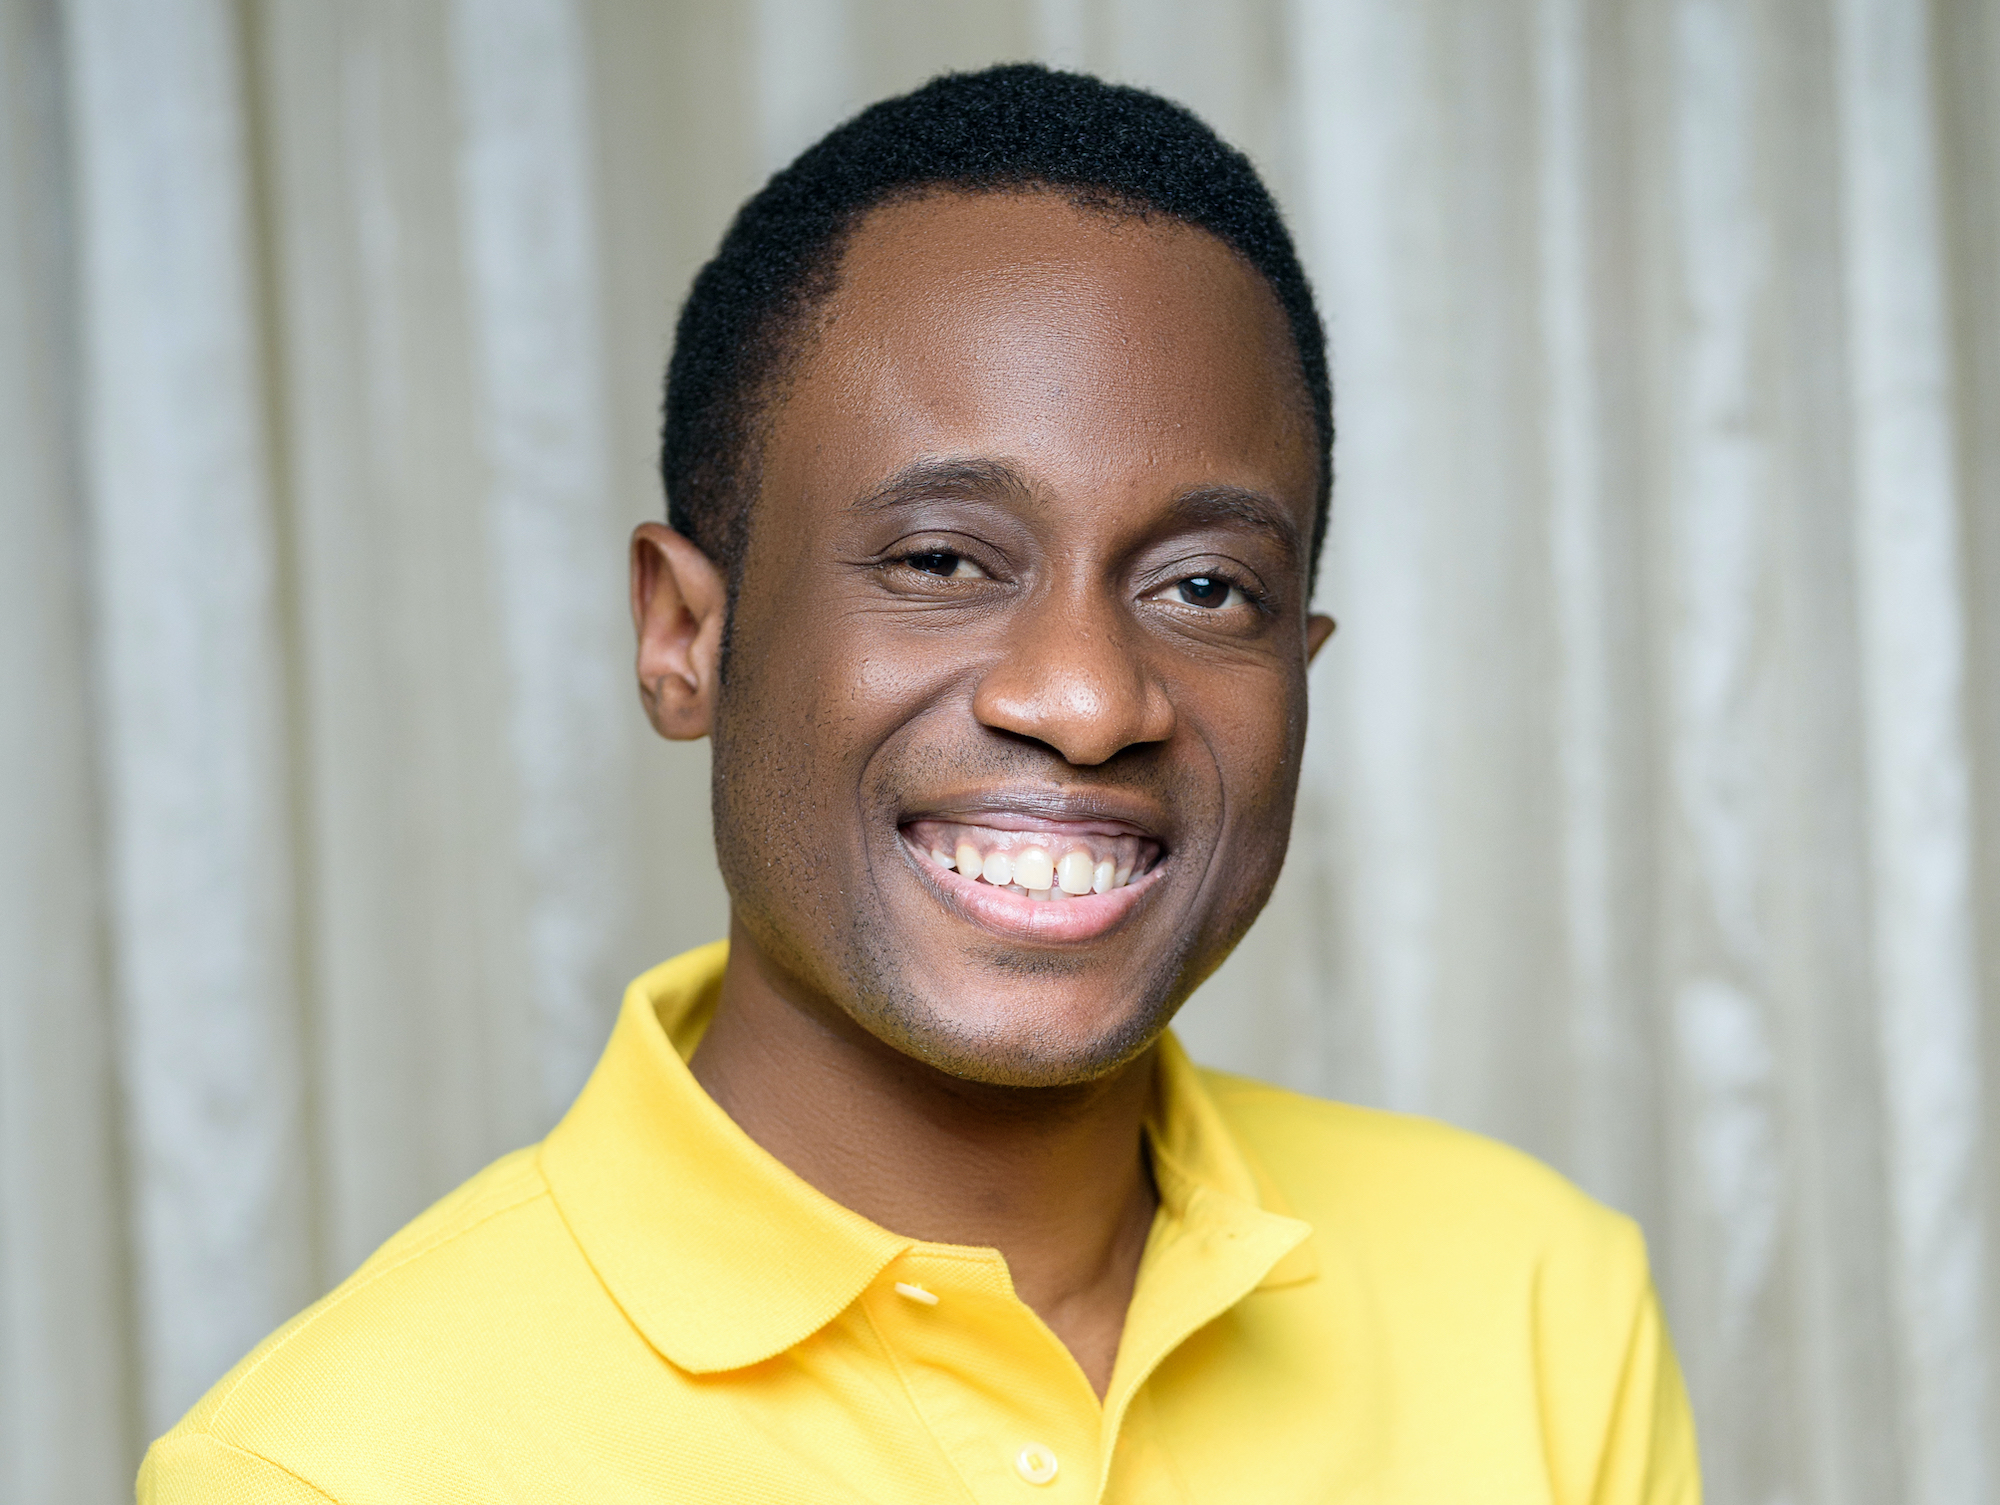 Headshot of an African-American man in a professional studio who wearing a yellow polo and smiling